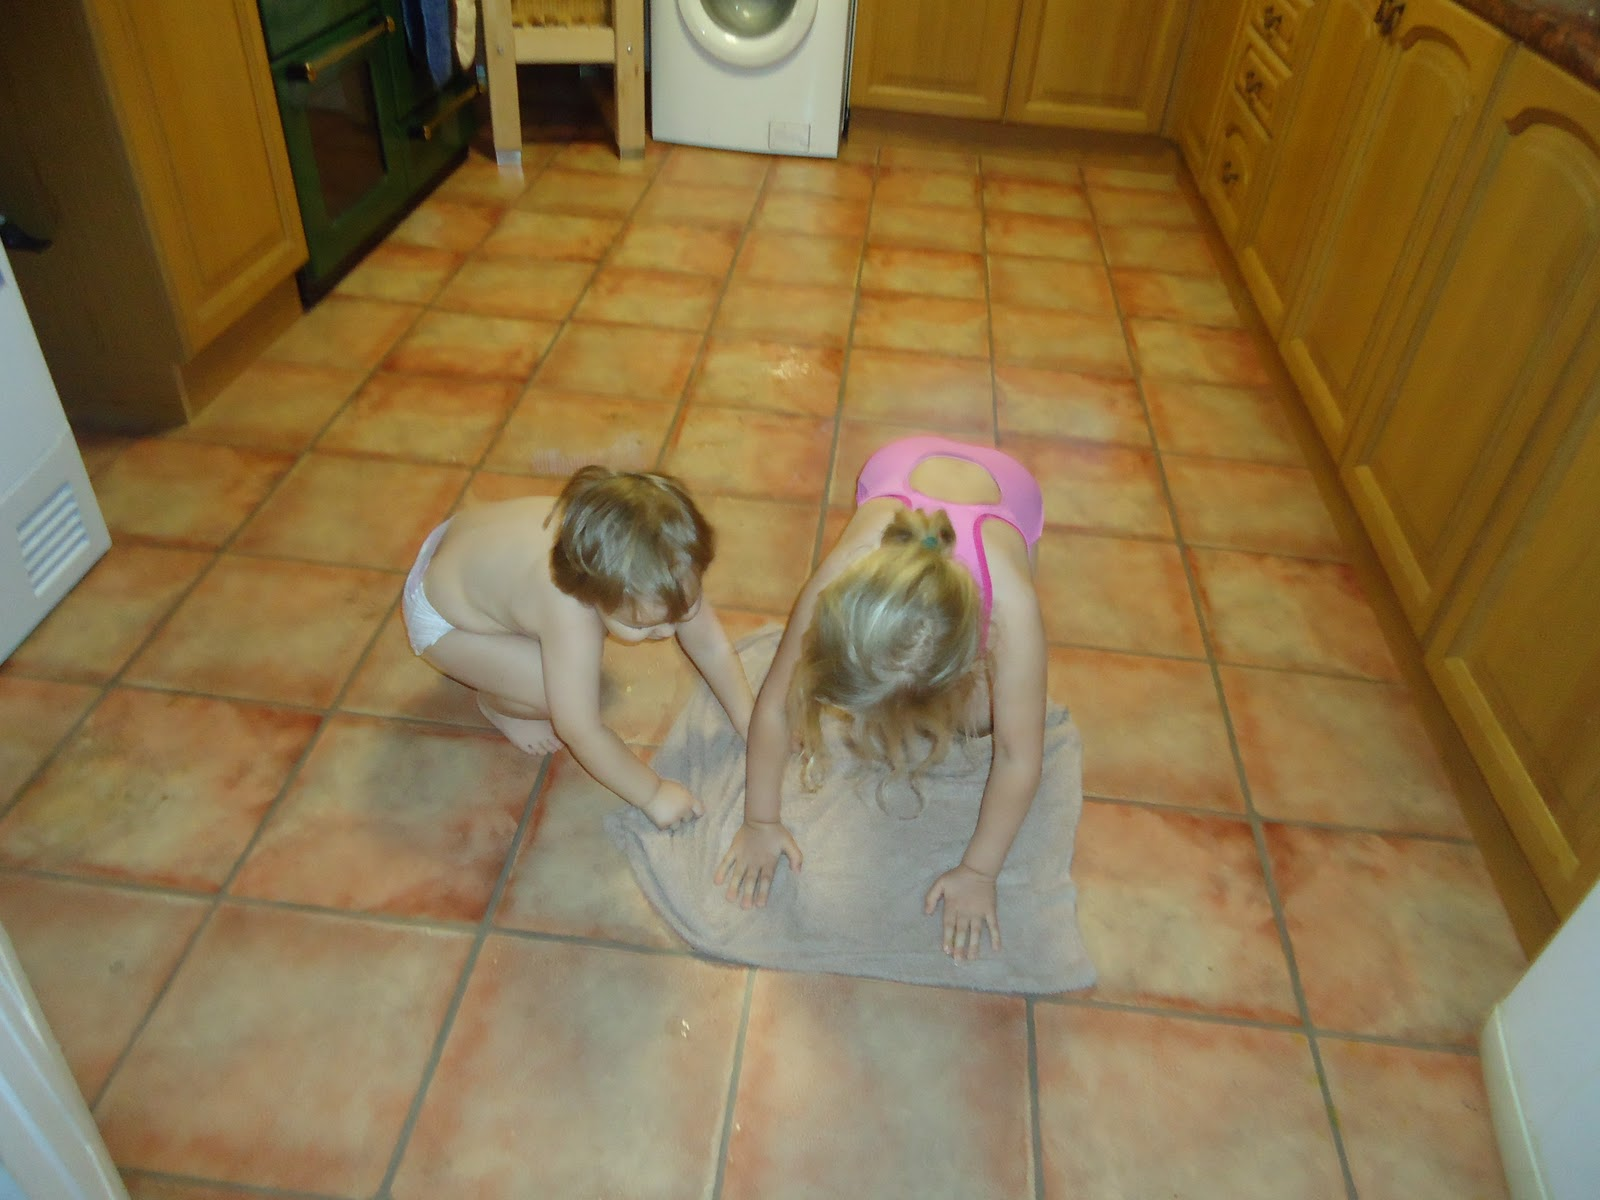 Cleaning Kitchen Floors Cabinet Drawer A Mothers Ramblings Making Chores Fun Clean The Floor Way